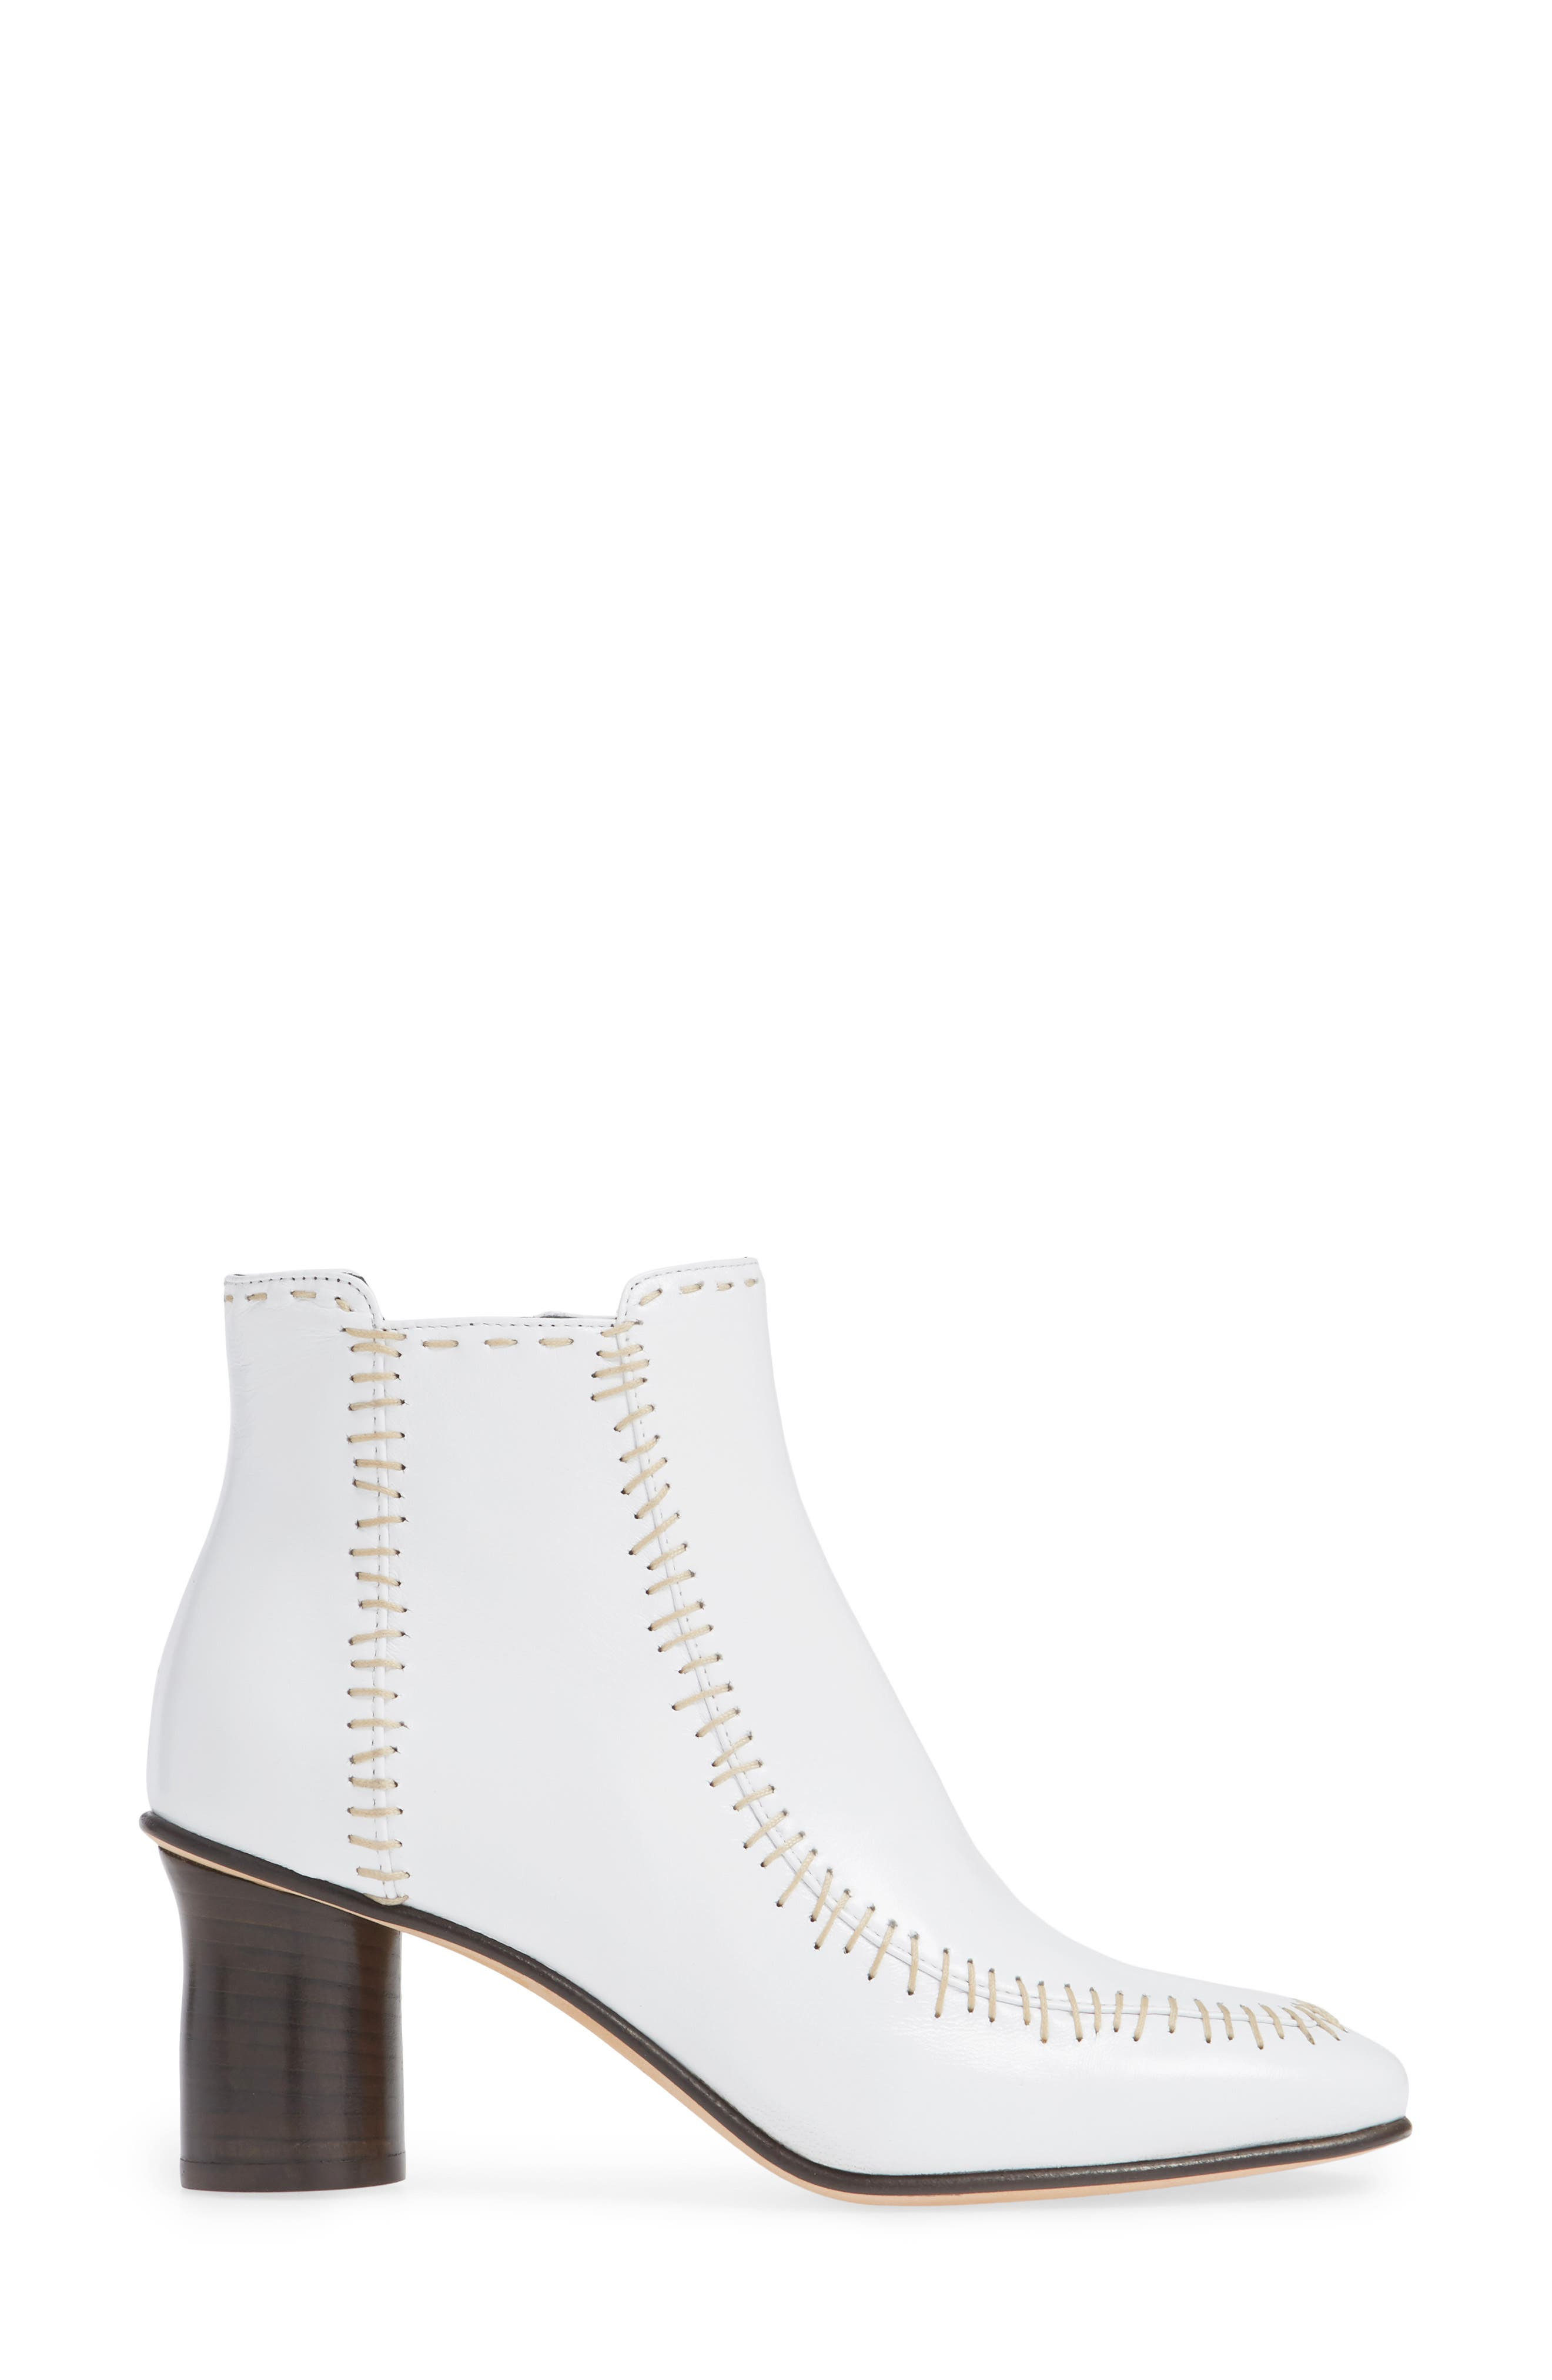 Stitch Leather Bootie,                             Alternate thumbnail 3, color,                             WHITE